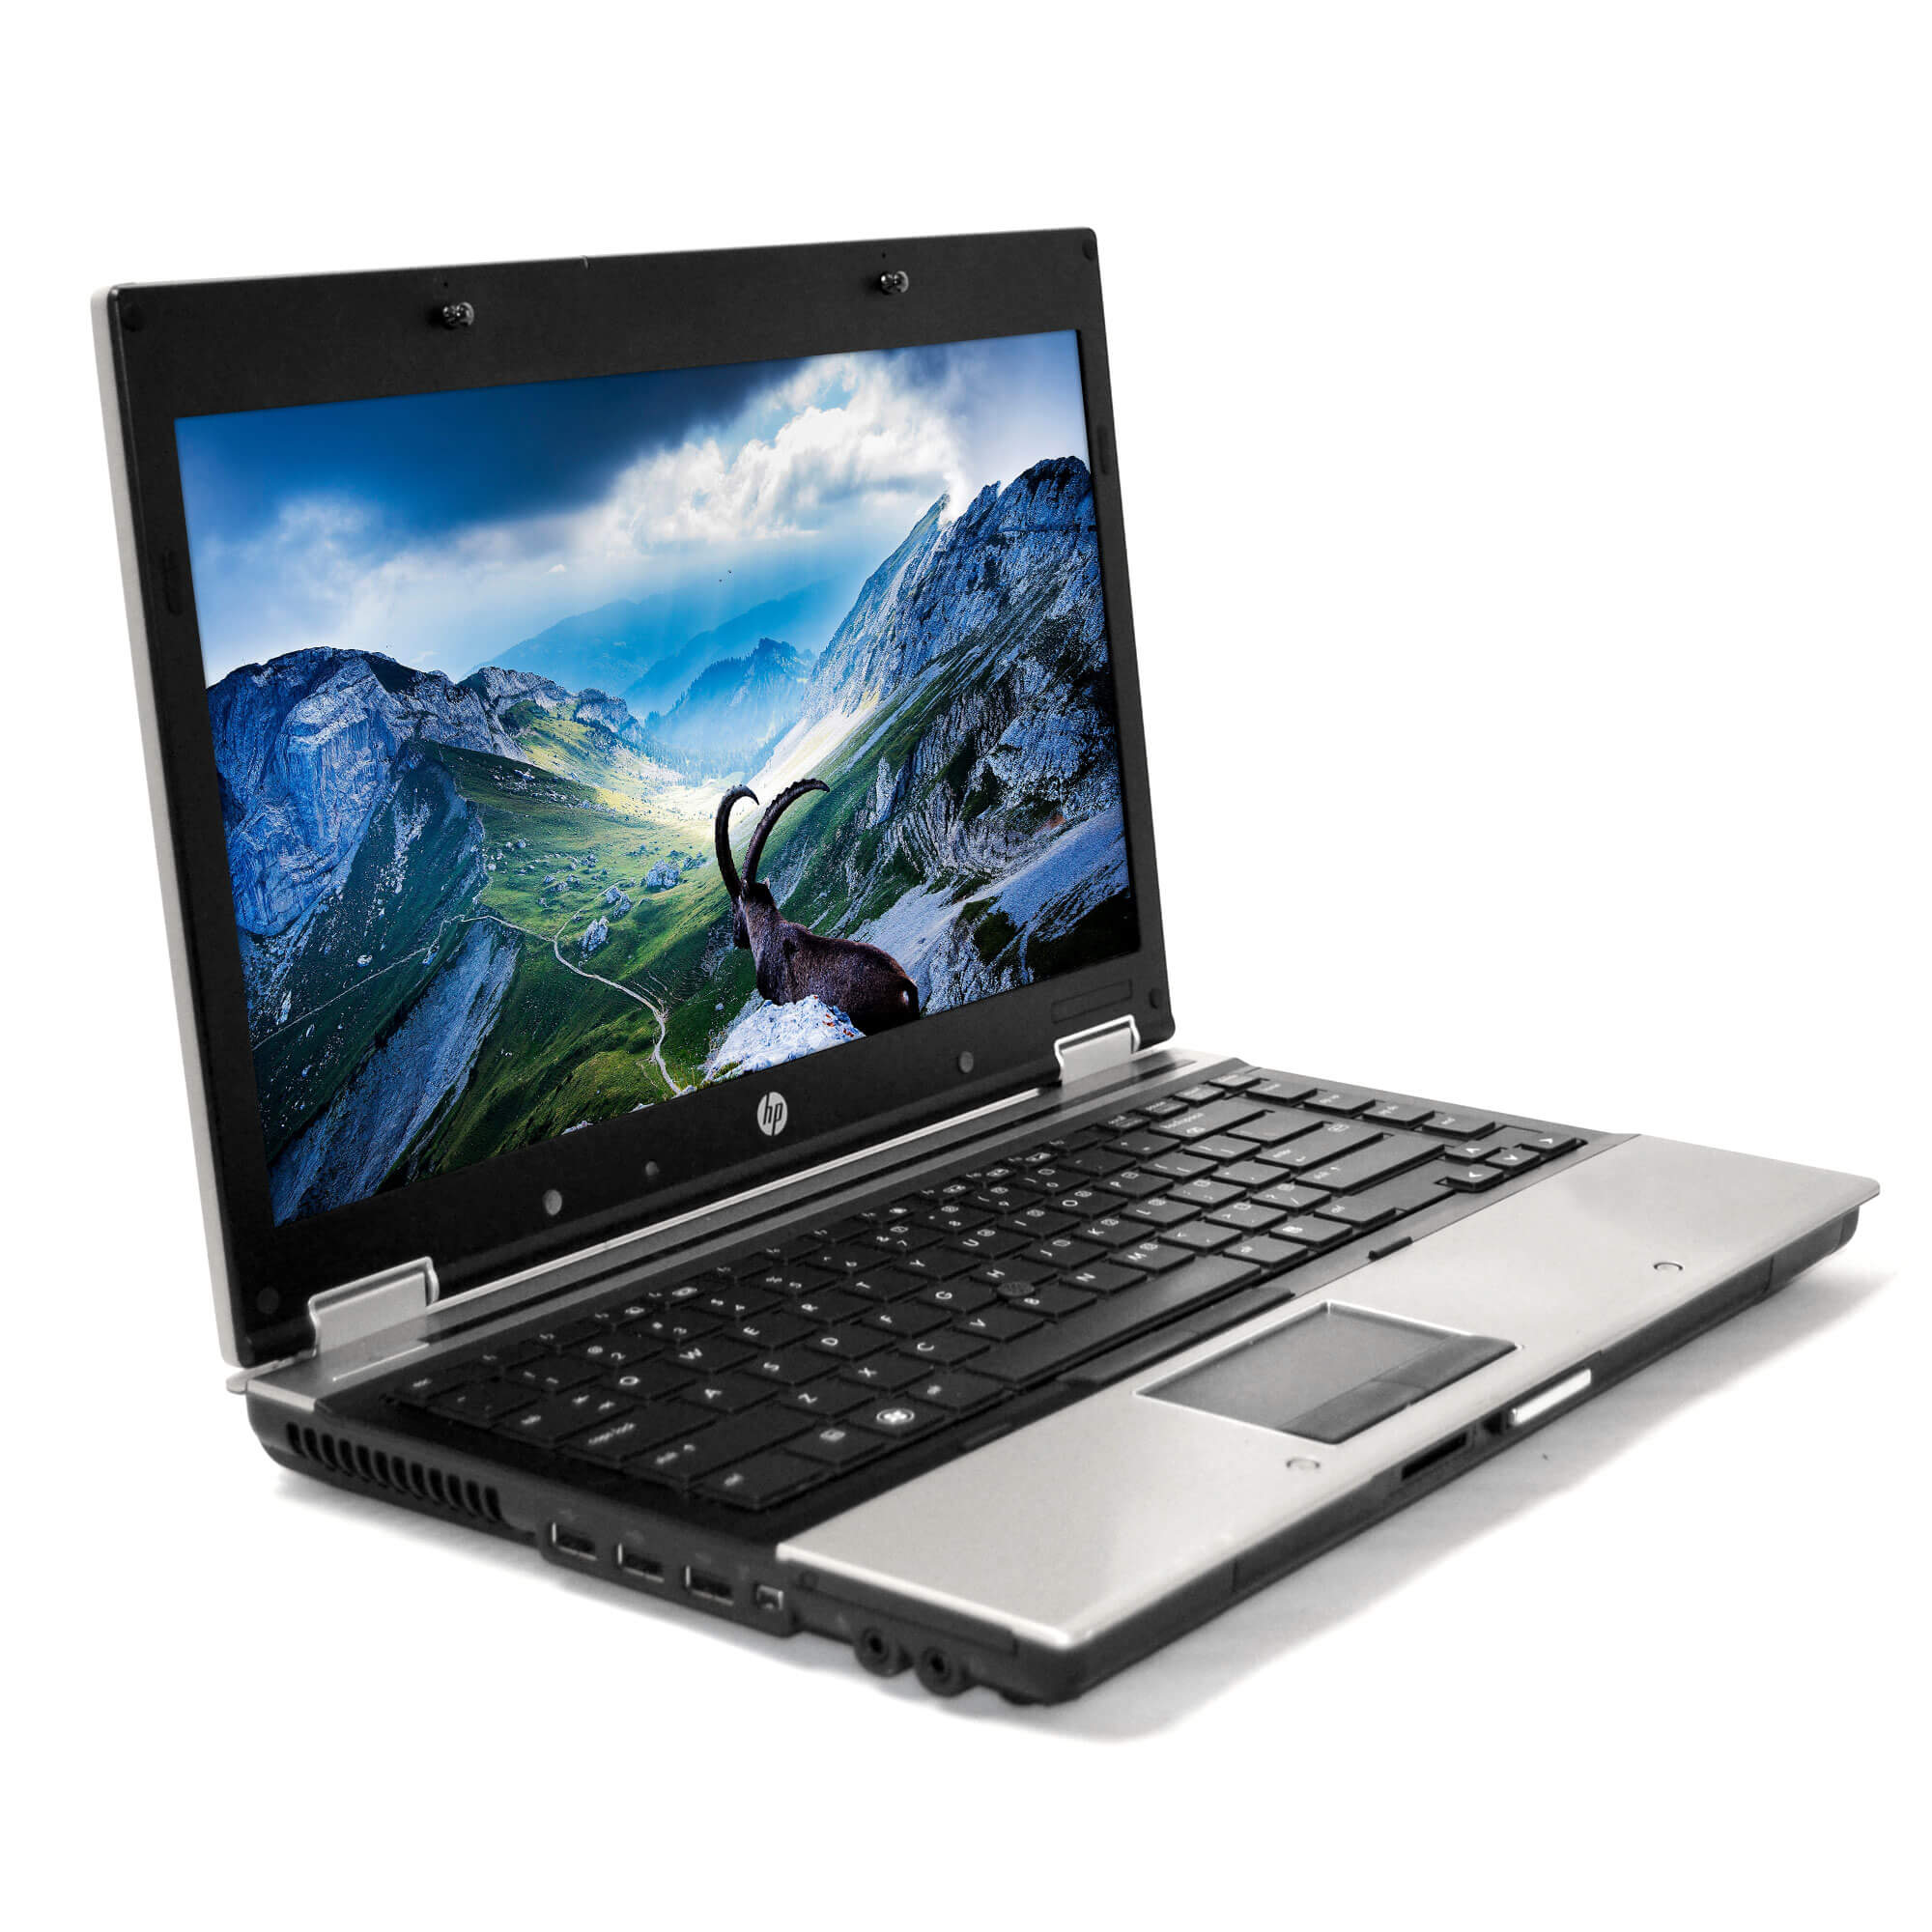 HP EliteBook 8440p Intel PRO/WLAN Drivers (2019)